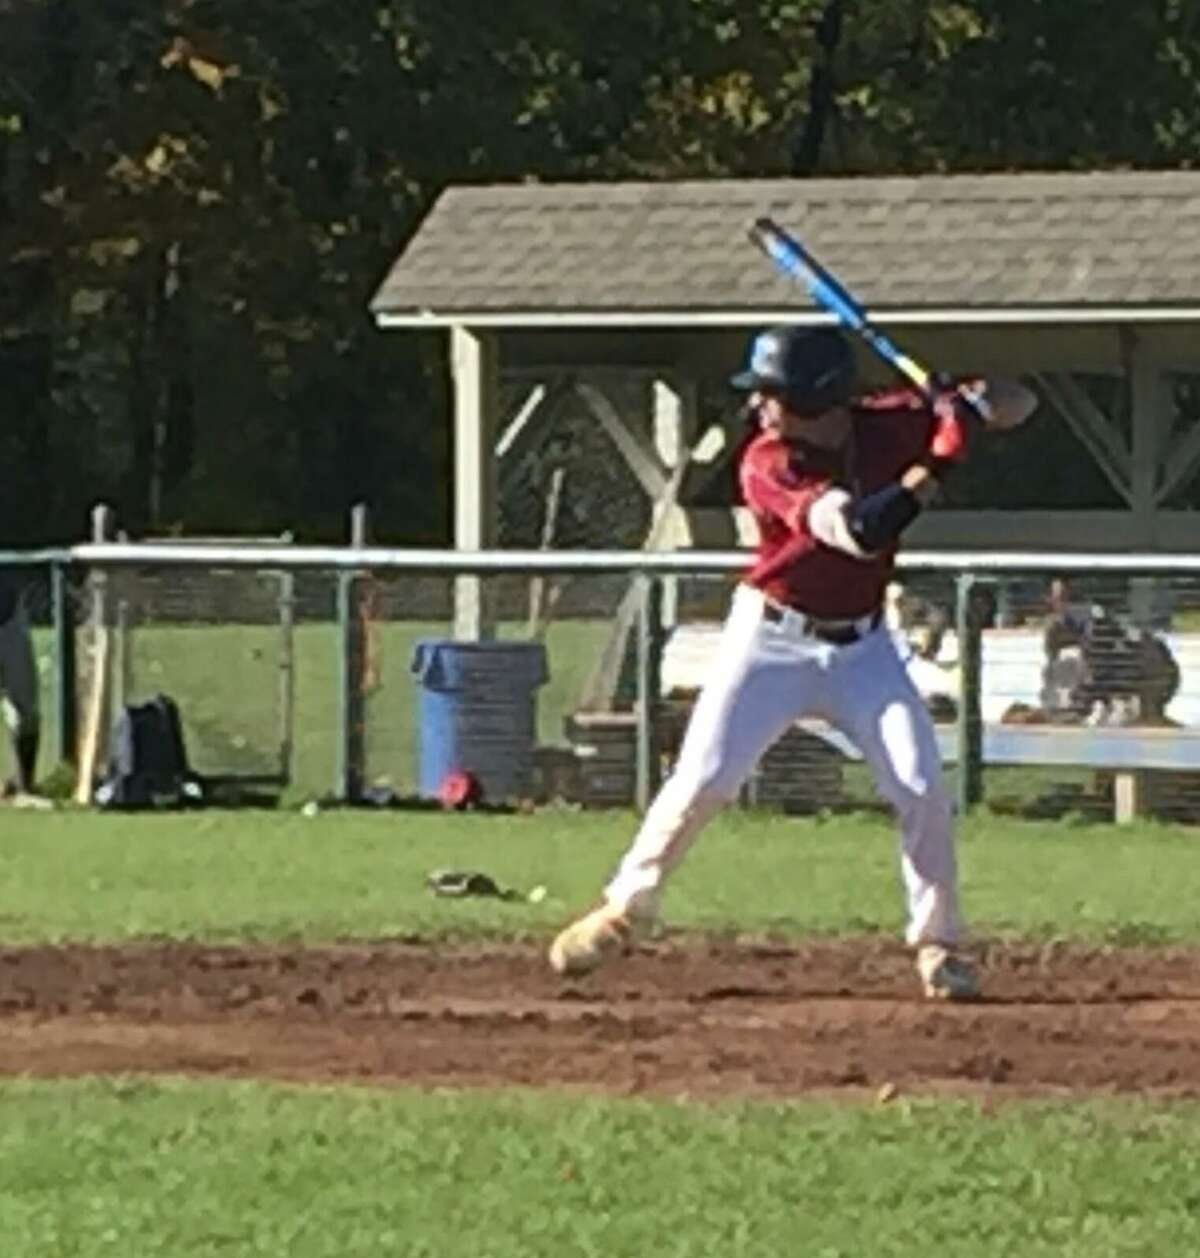 Avon Old Farms shortstop Ryan Daniels of Meriden is committed to UConn